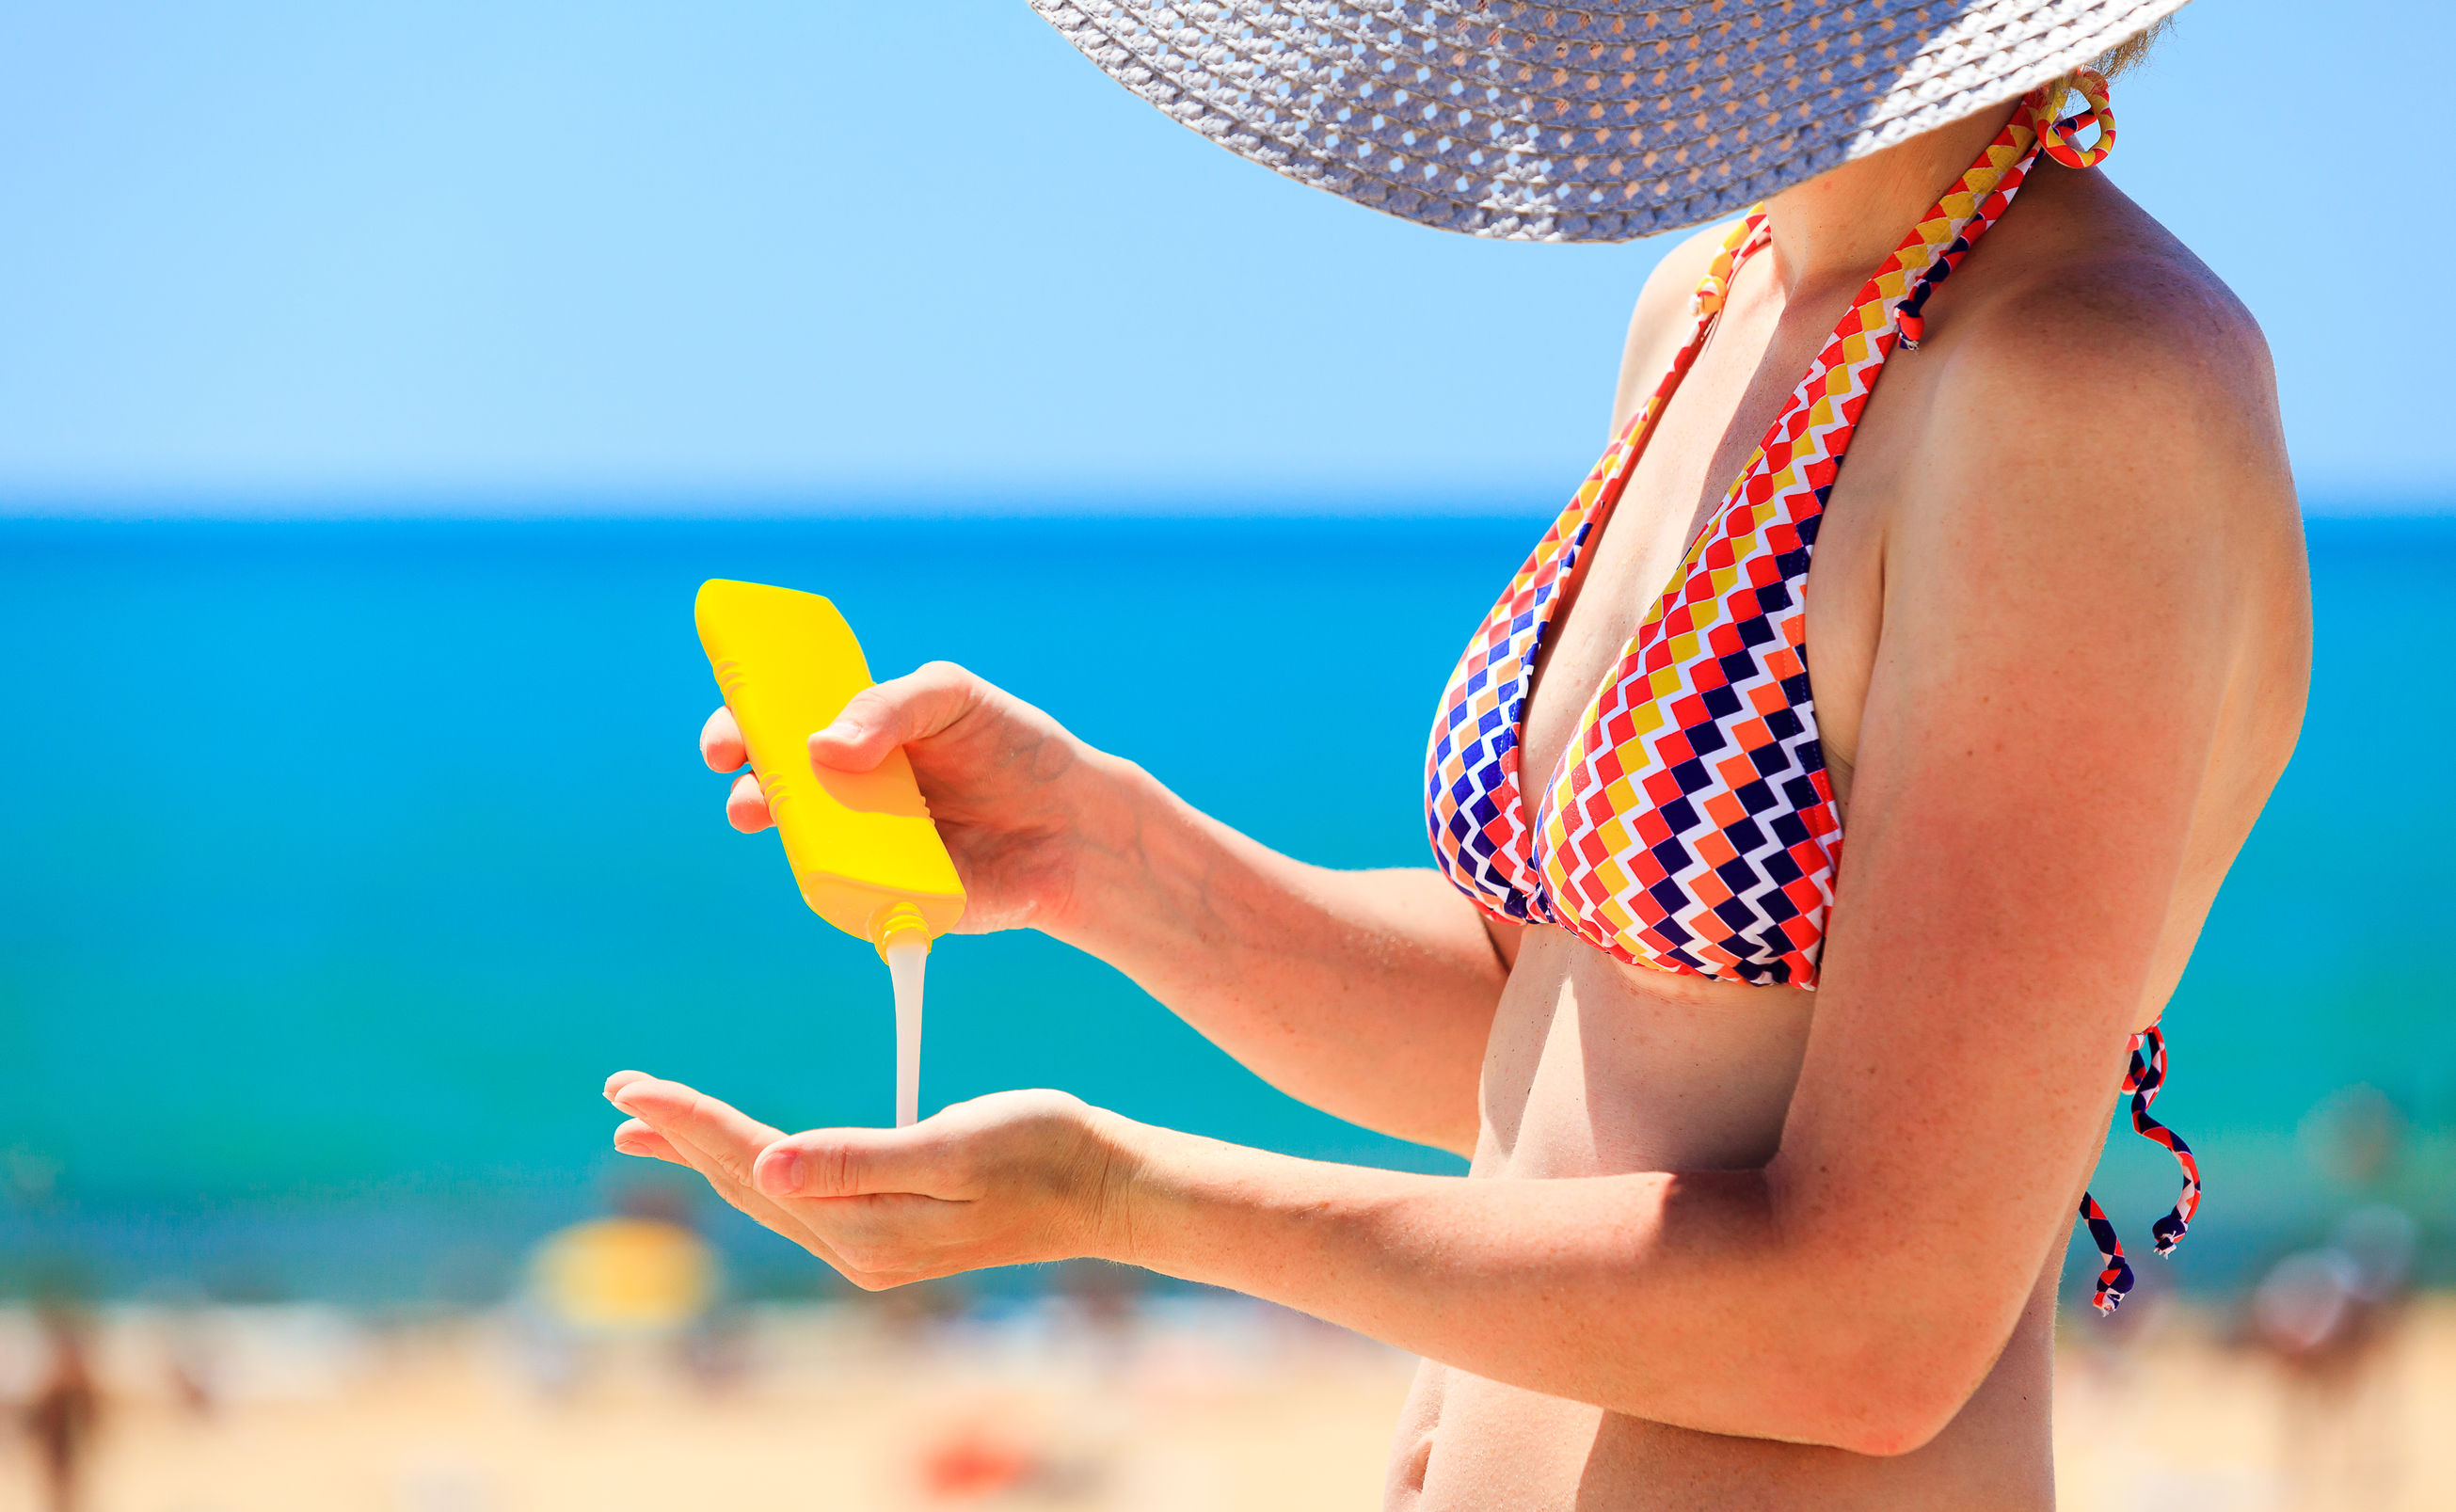 40400729 - Woman Applying Protective Lotion Before Sunbathing At Beach